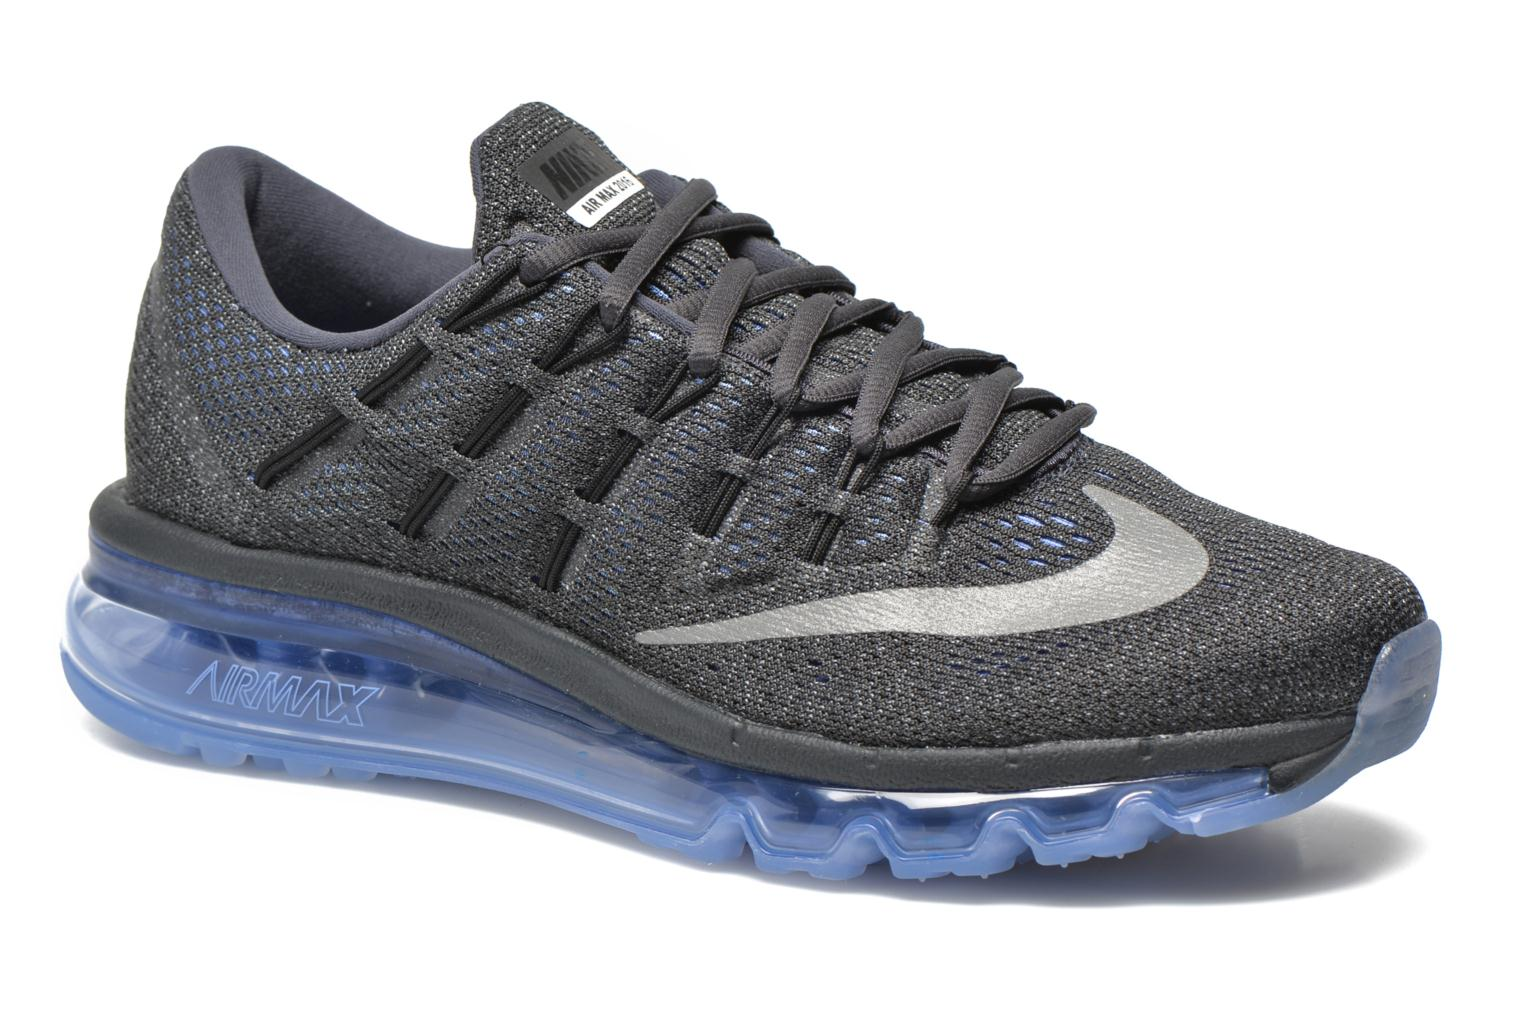 nike air max 2016 grigie